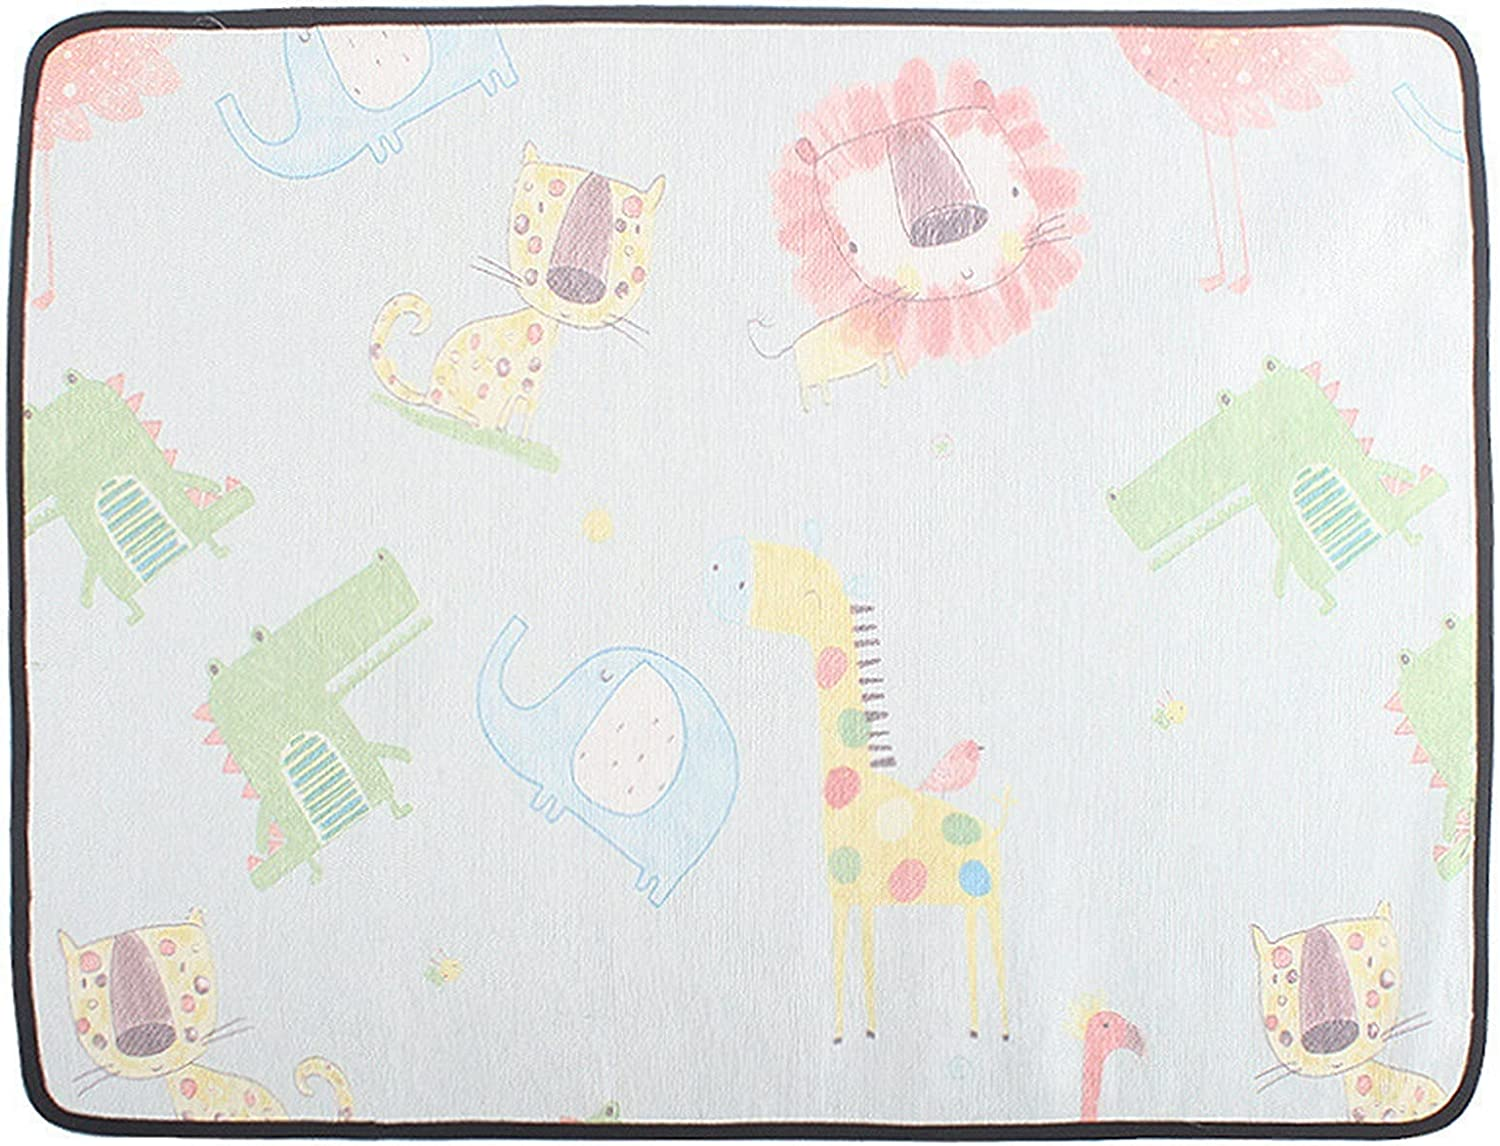 LUBINGT Pet Cooling pad Dog D Recommendation Pad Mat Bombing new work for Summer